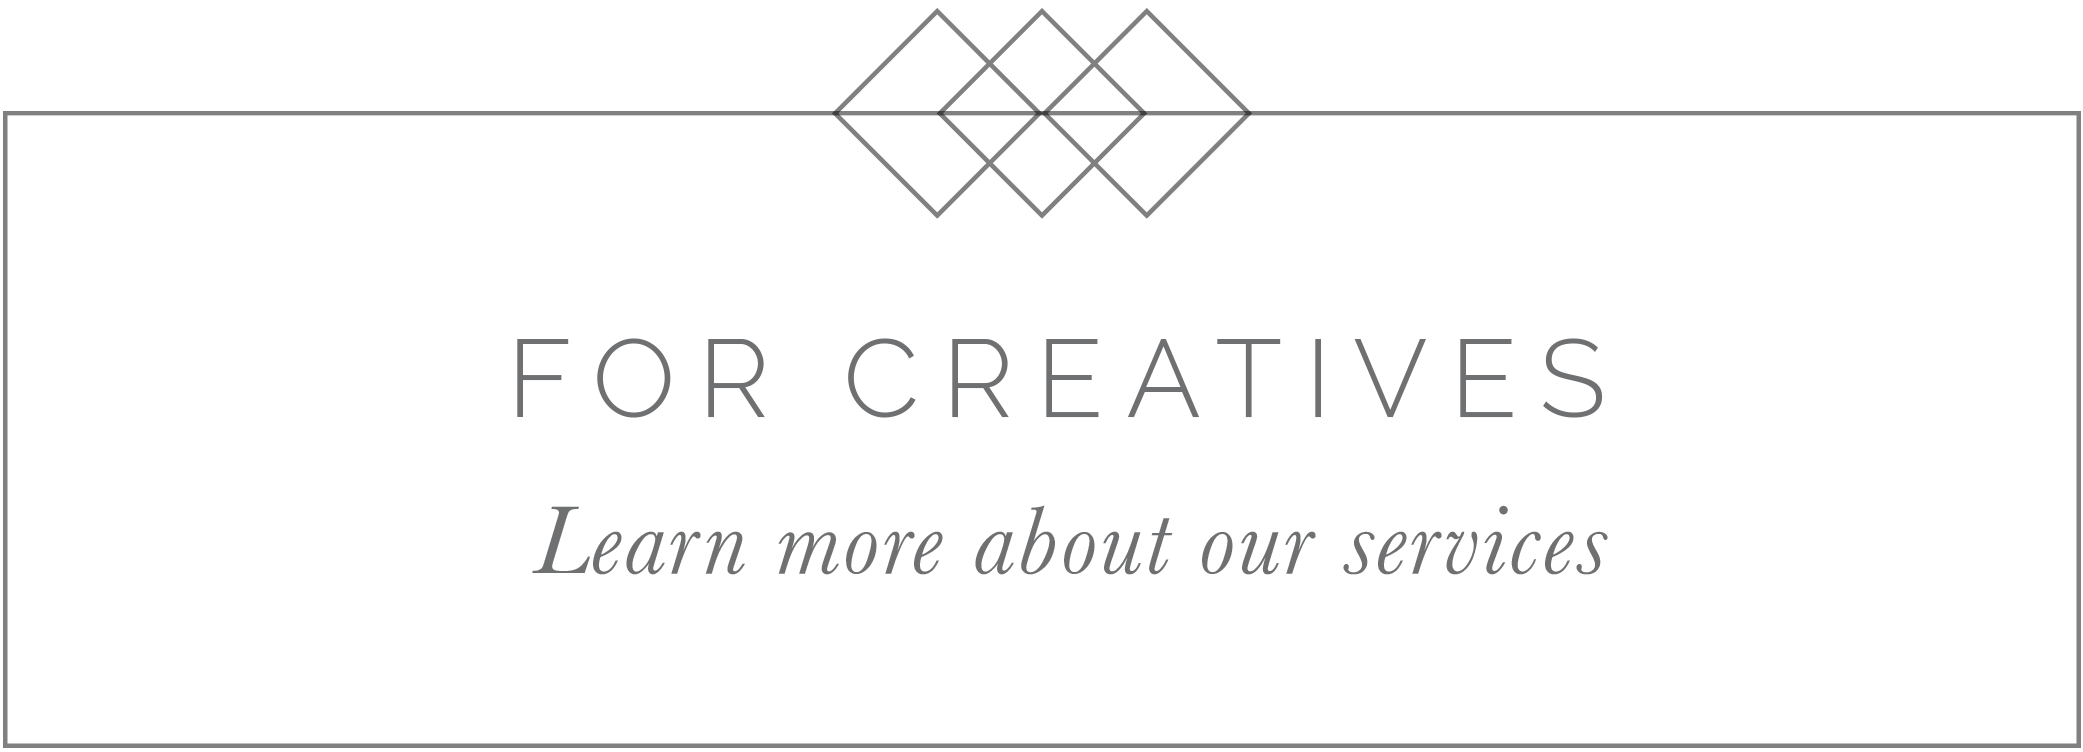 CREATIVESgallerybutton.png